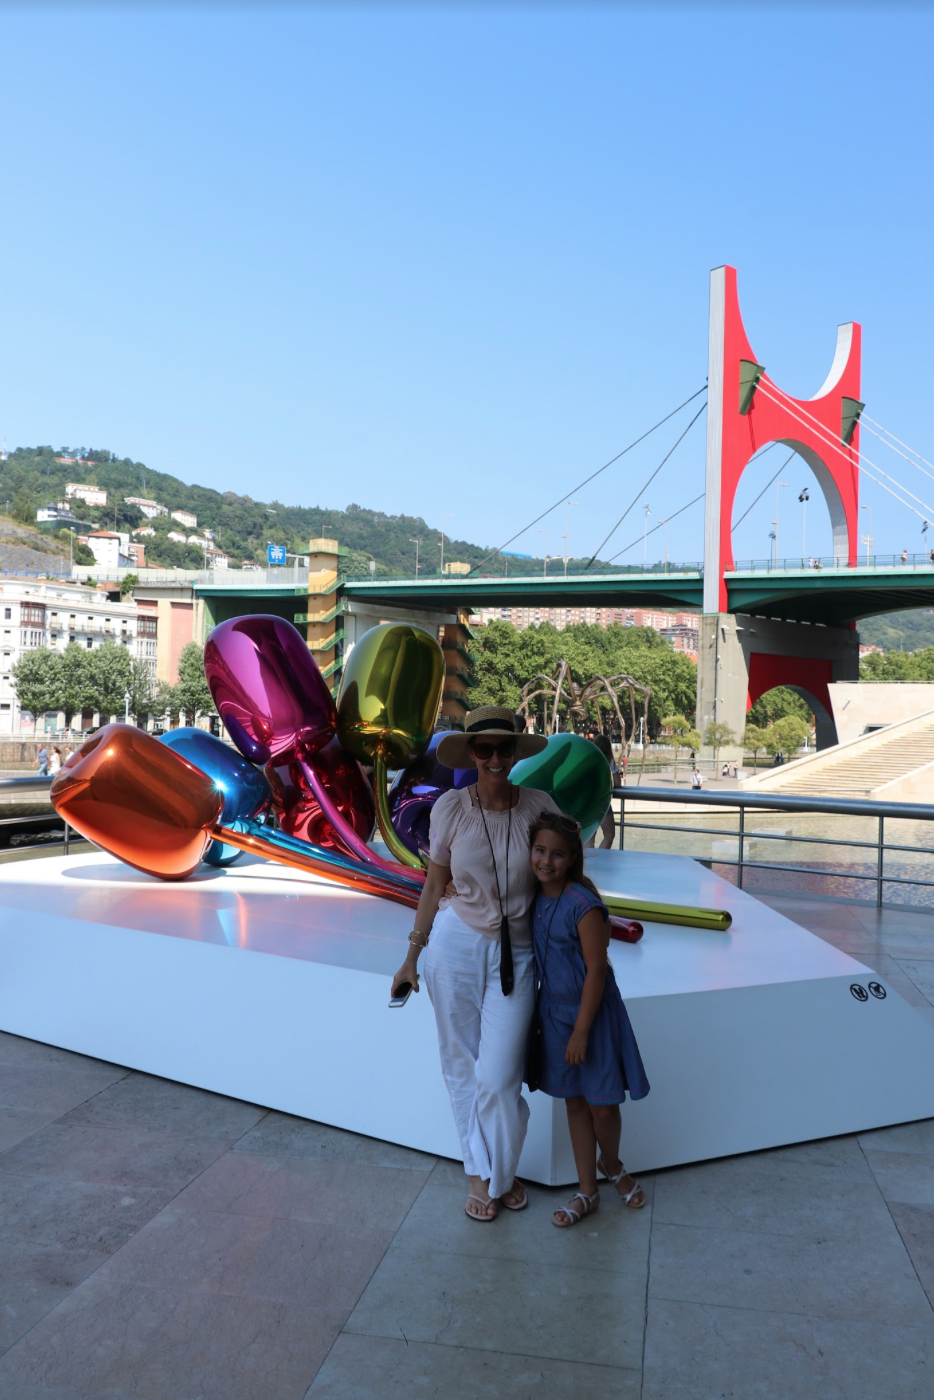 Lori Dennis with her daughter outside the Bilbao Guggenheim